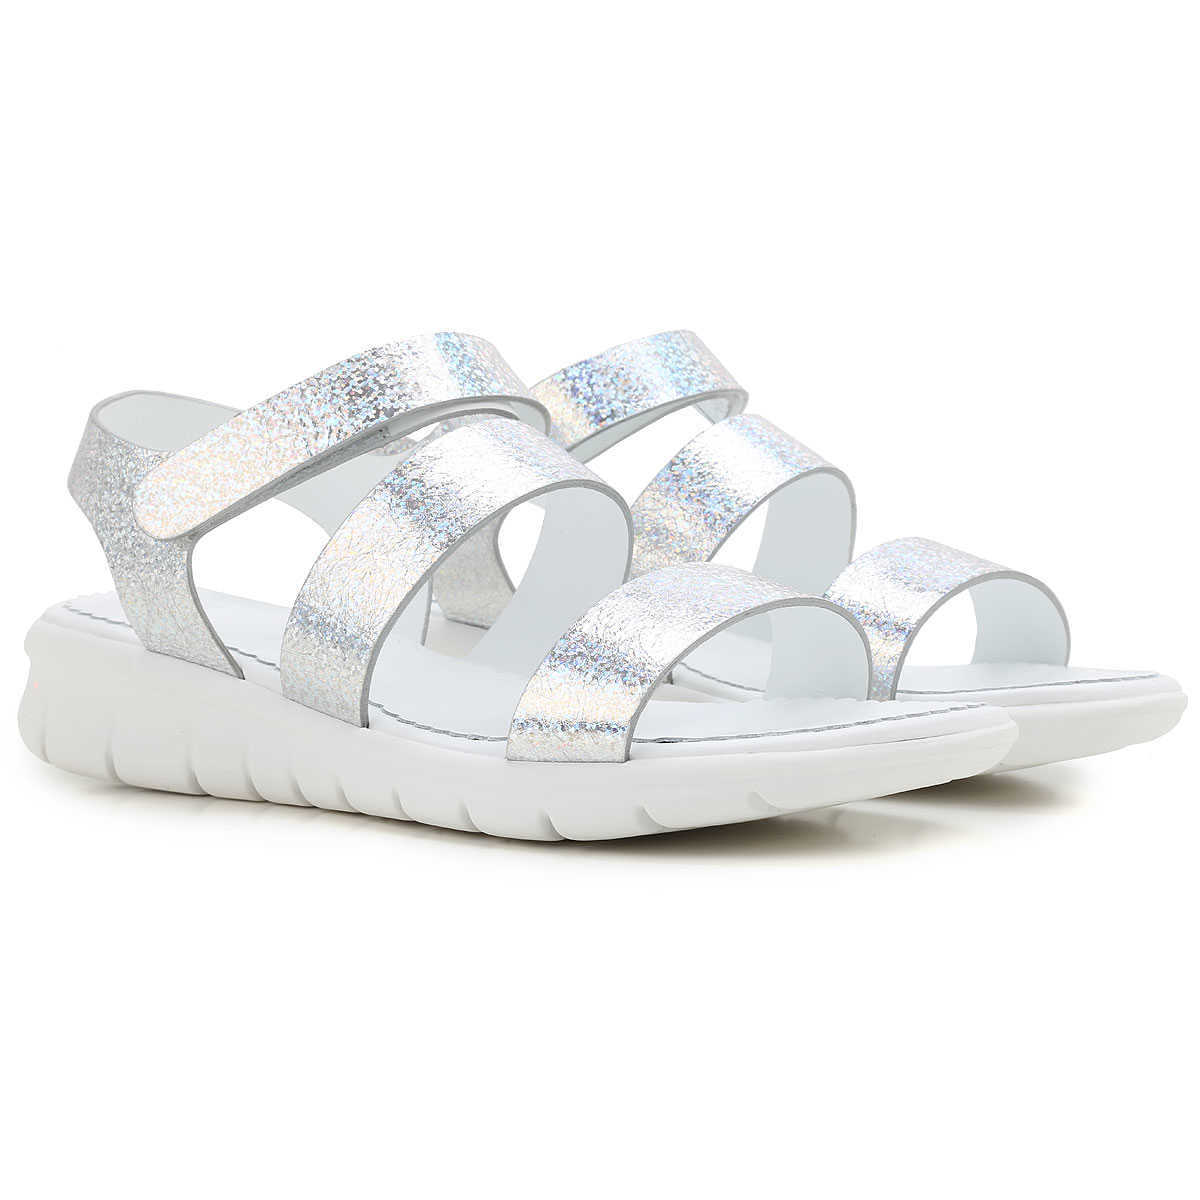 Moncler Sandals for Women On Sale in Outlet Silver UK - GOOFASH